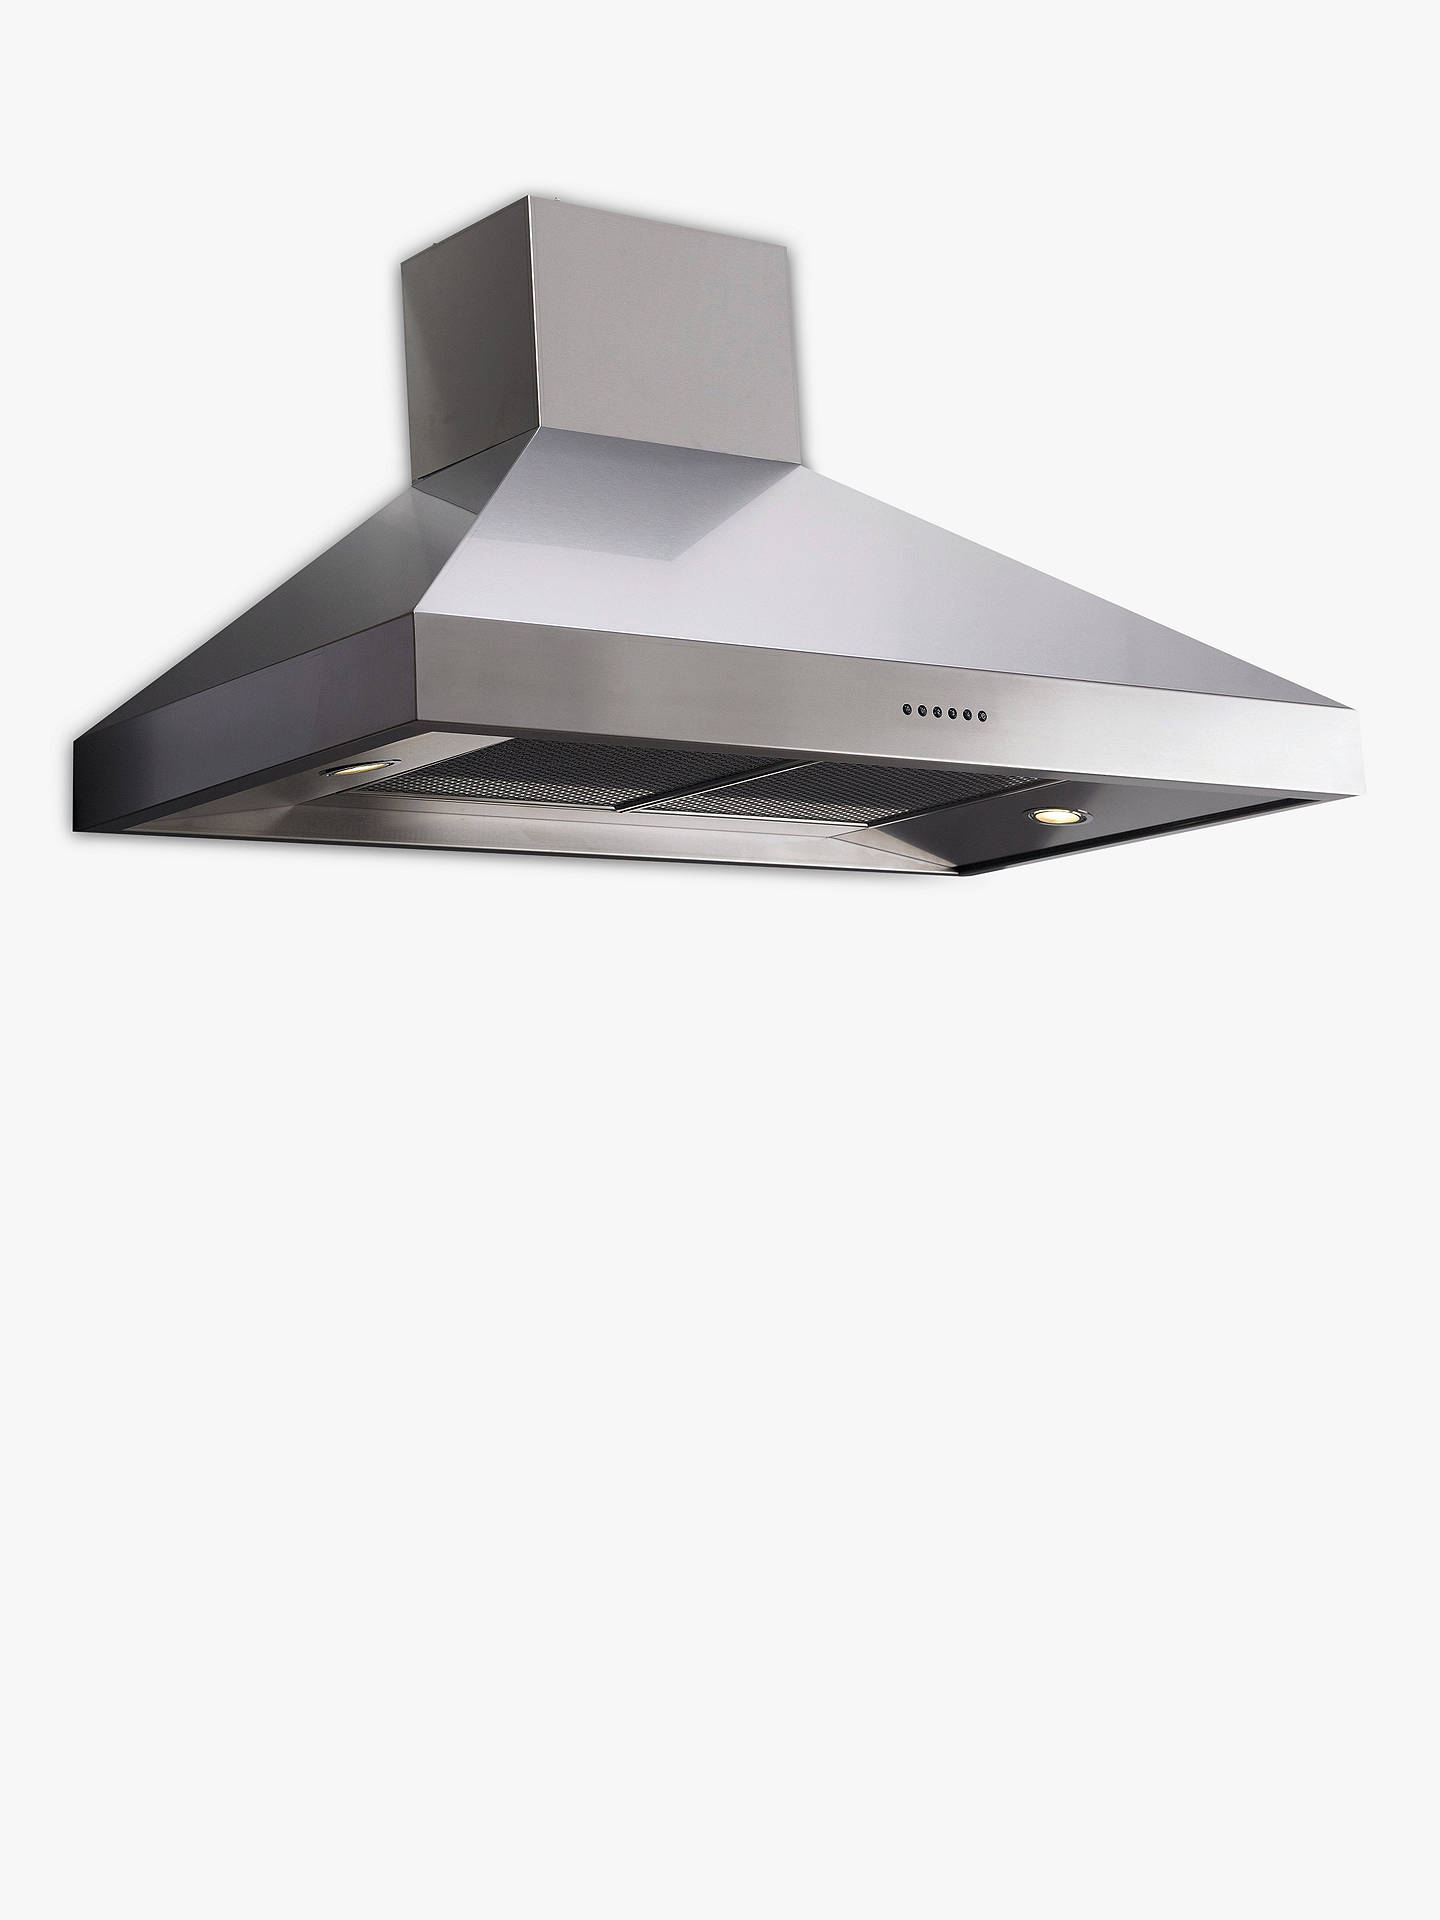 BuyBritannia HOOD-BTH120-S Latour Chimney Cooker Hood, Stainless Steel Online at johnlewis.com